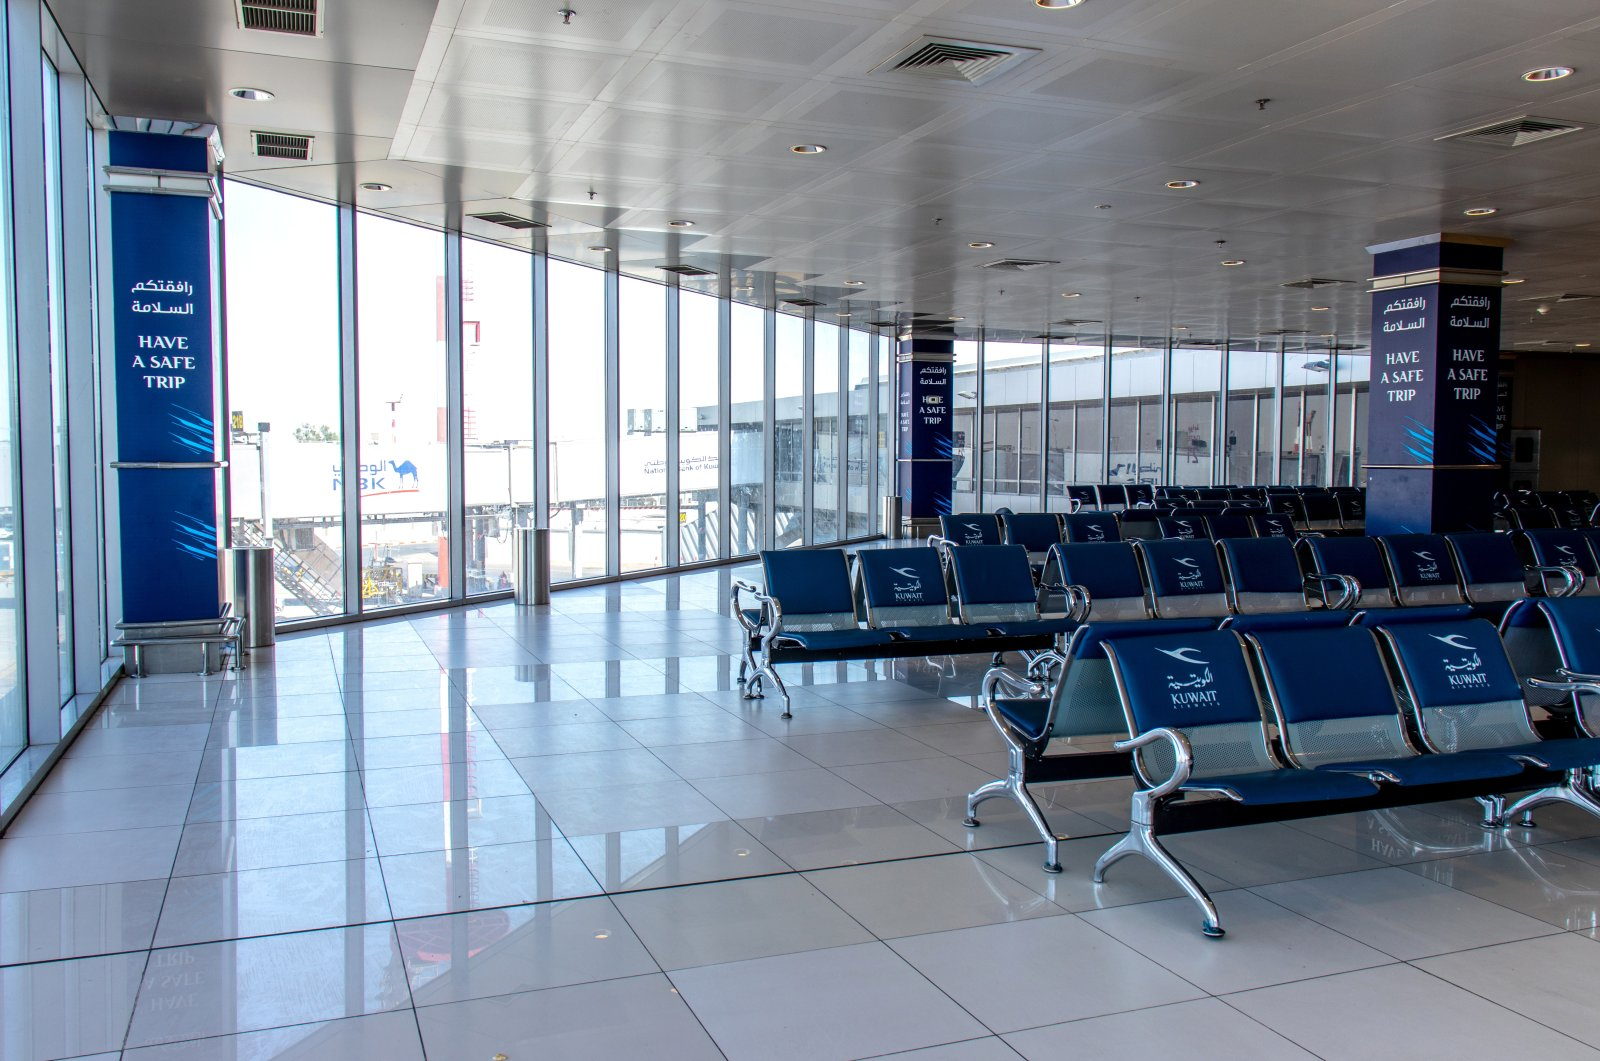 With an approximate $4.5 billion bid, Kuwait International Airport's new terminal construction was the largest tender won abroad in a single package by Turkish contractors. (Shutterstock Photo)